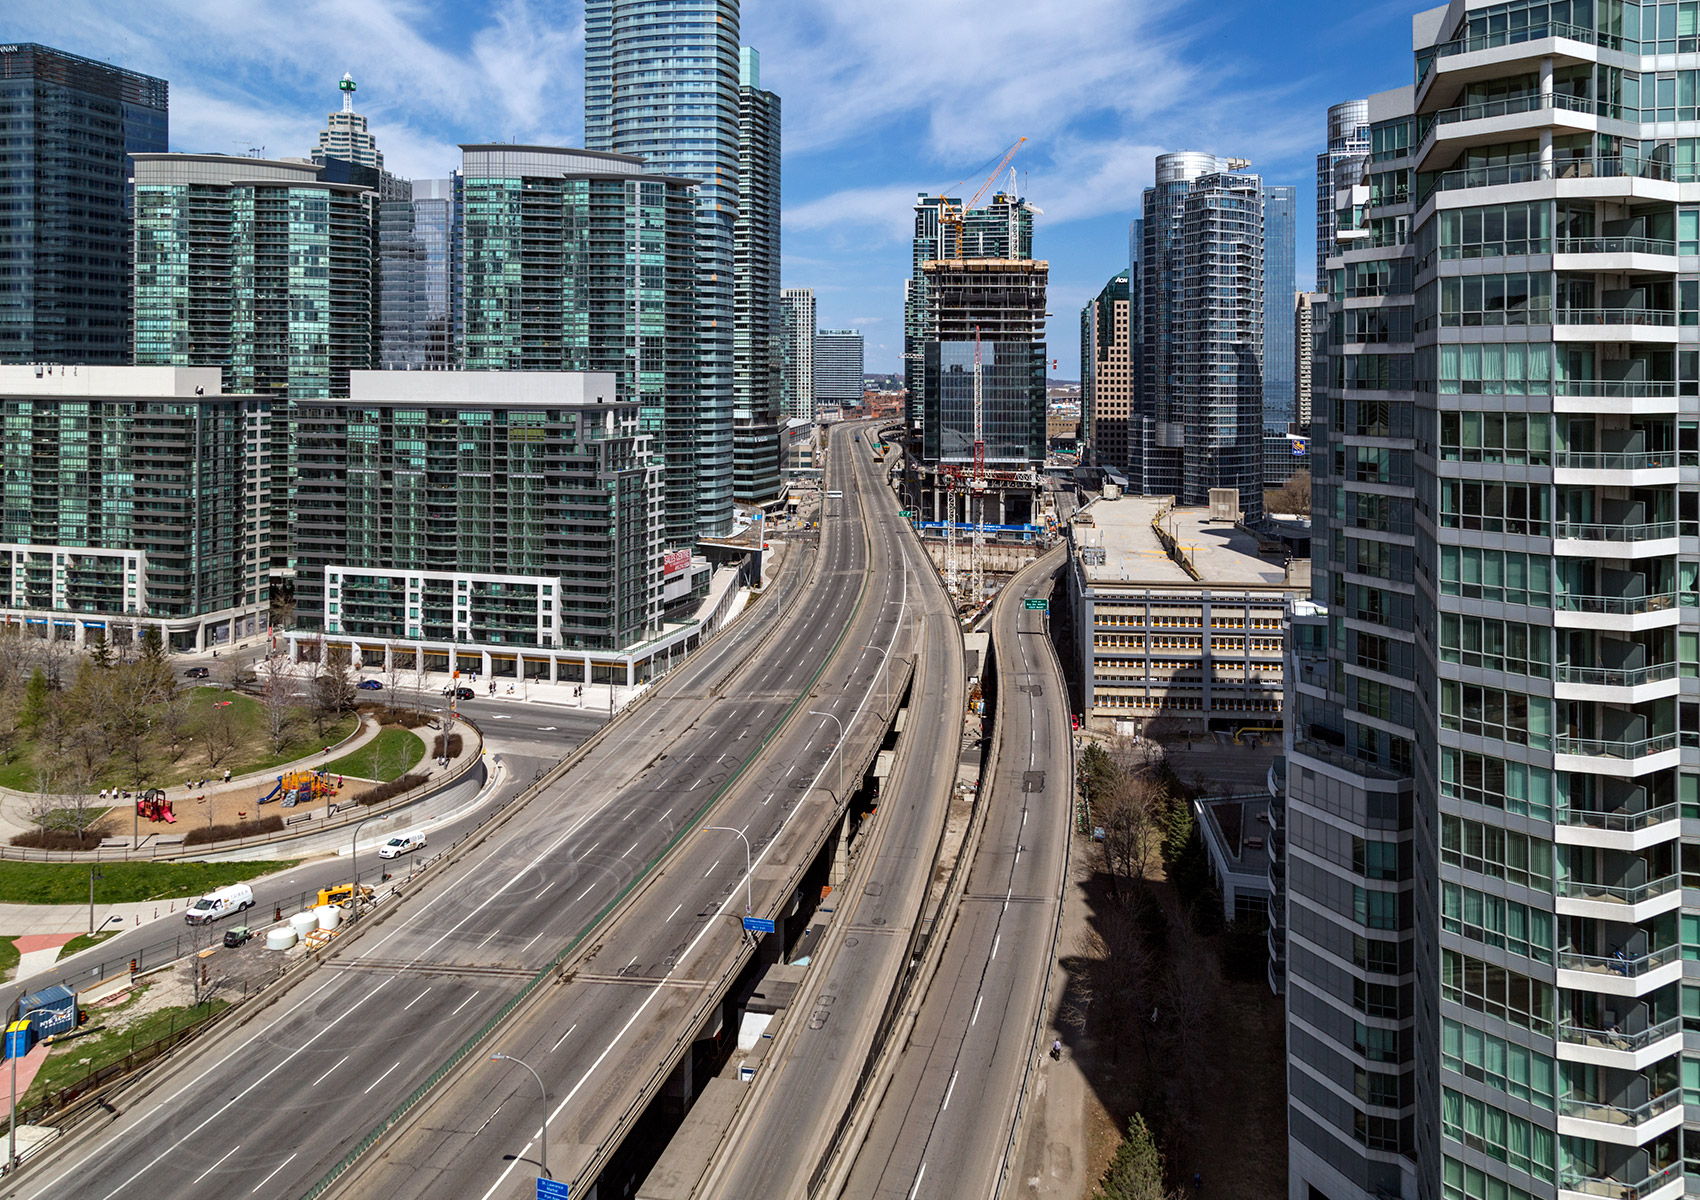 20150503. 70m below an empty Gardiner Expressway winds through s